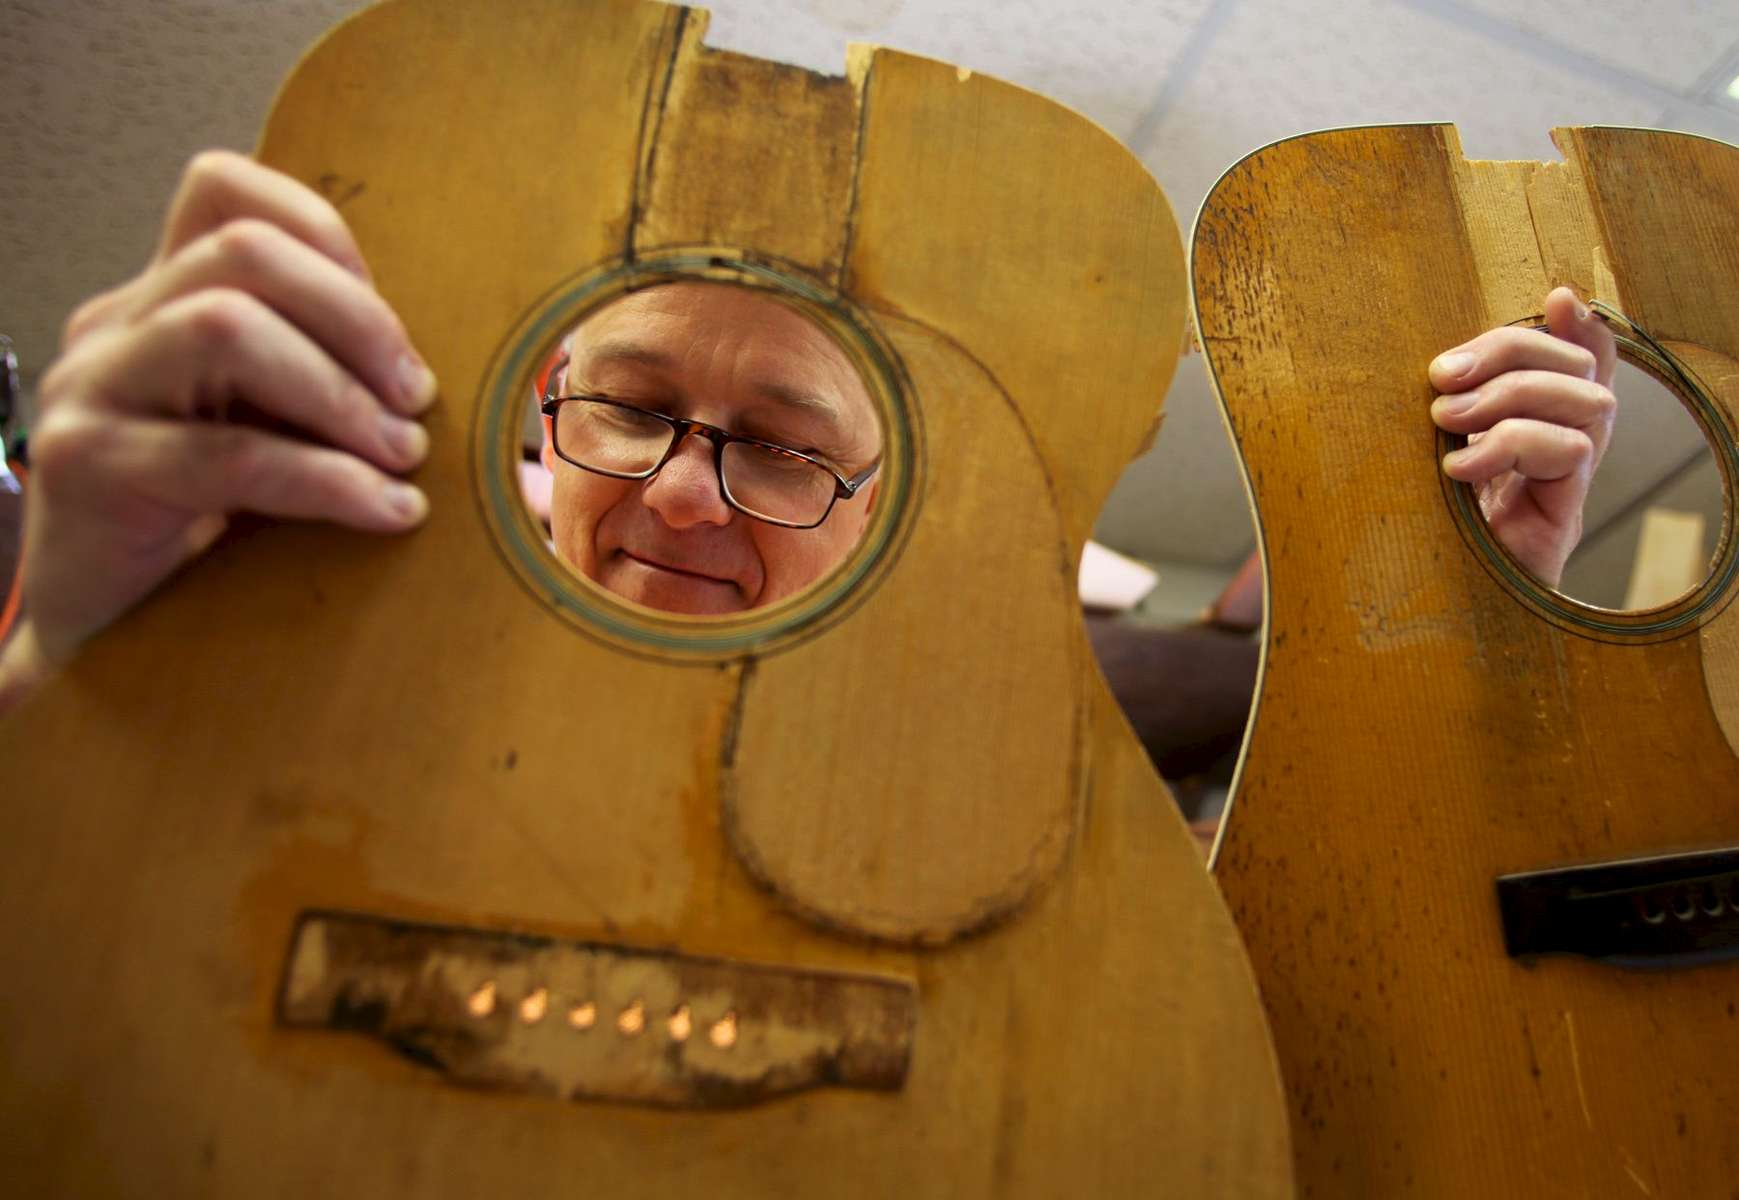 Virginia luthier Jim Merrill uses two pre-war Martin guitar tops, a 1934 OM-18 and a 1941 D-18, as a guide for his current line of guitars.For The Fretboard Journal #27